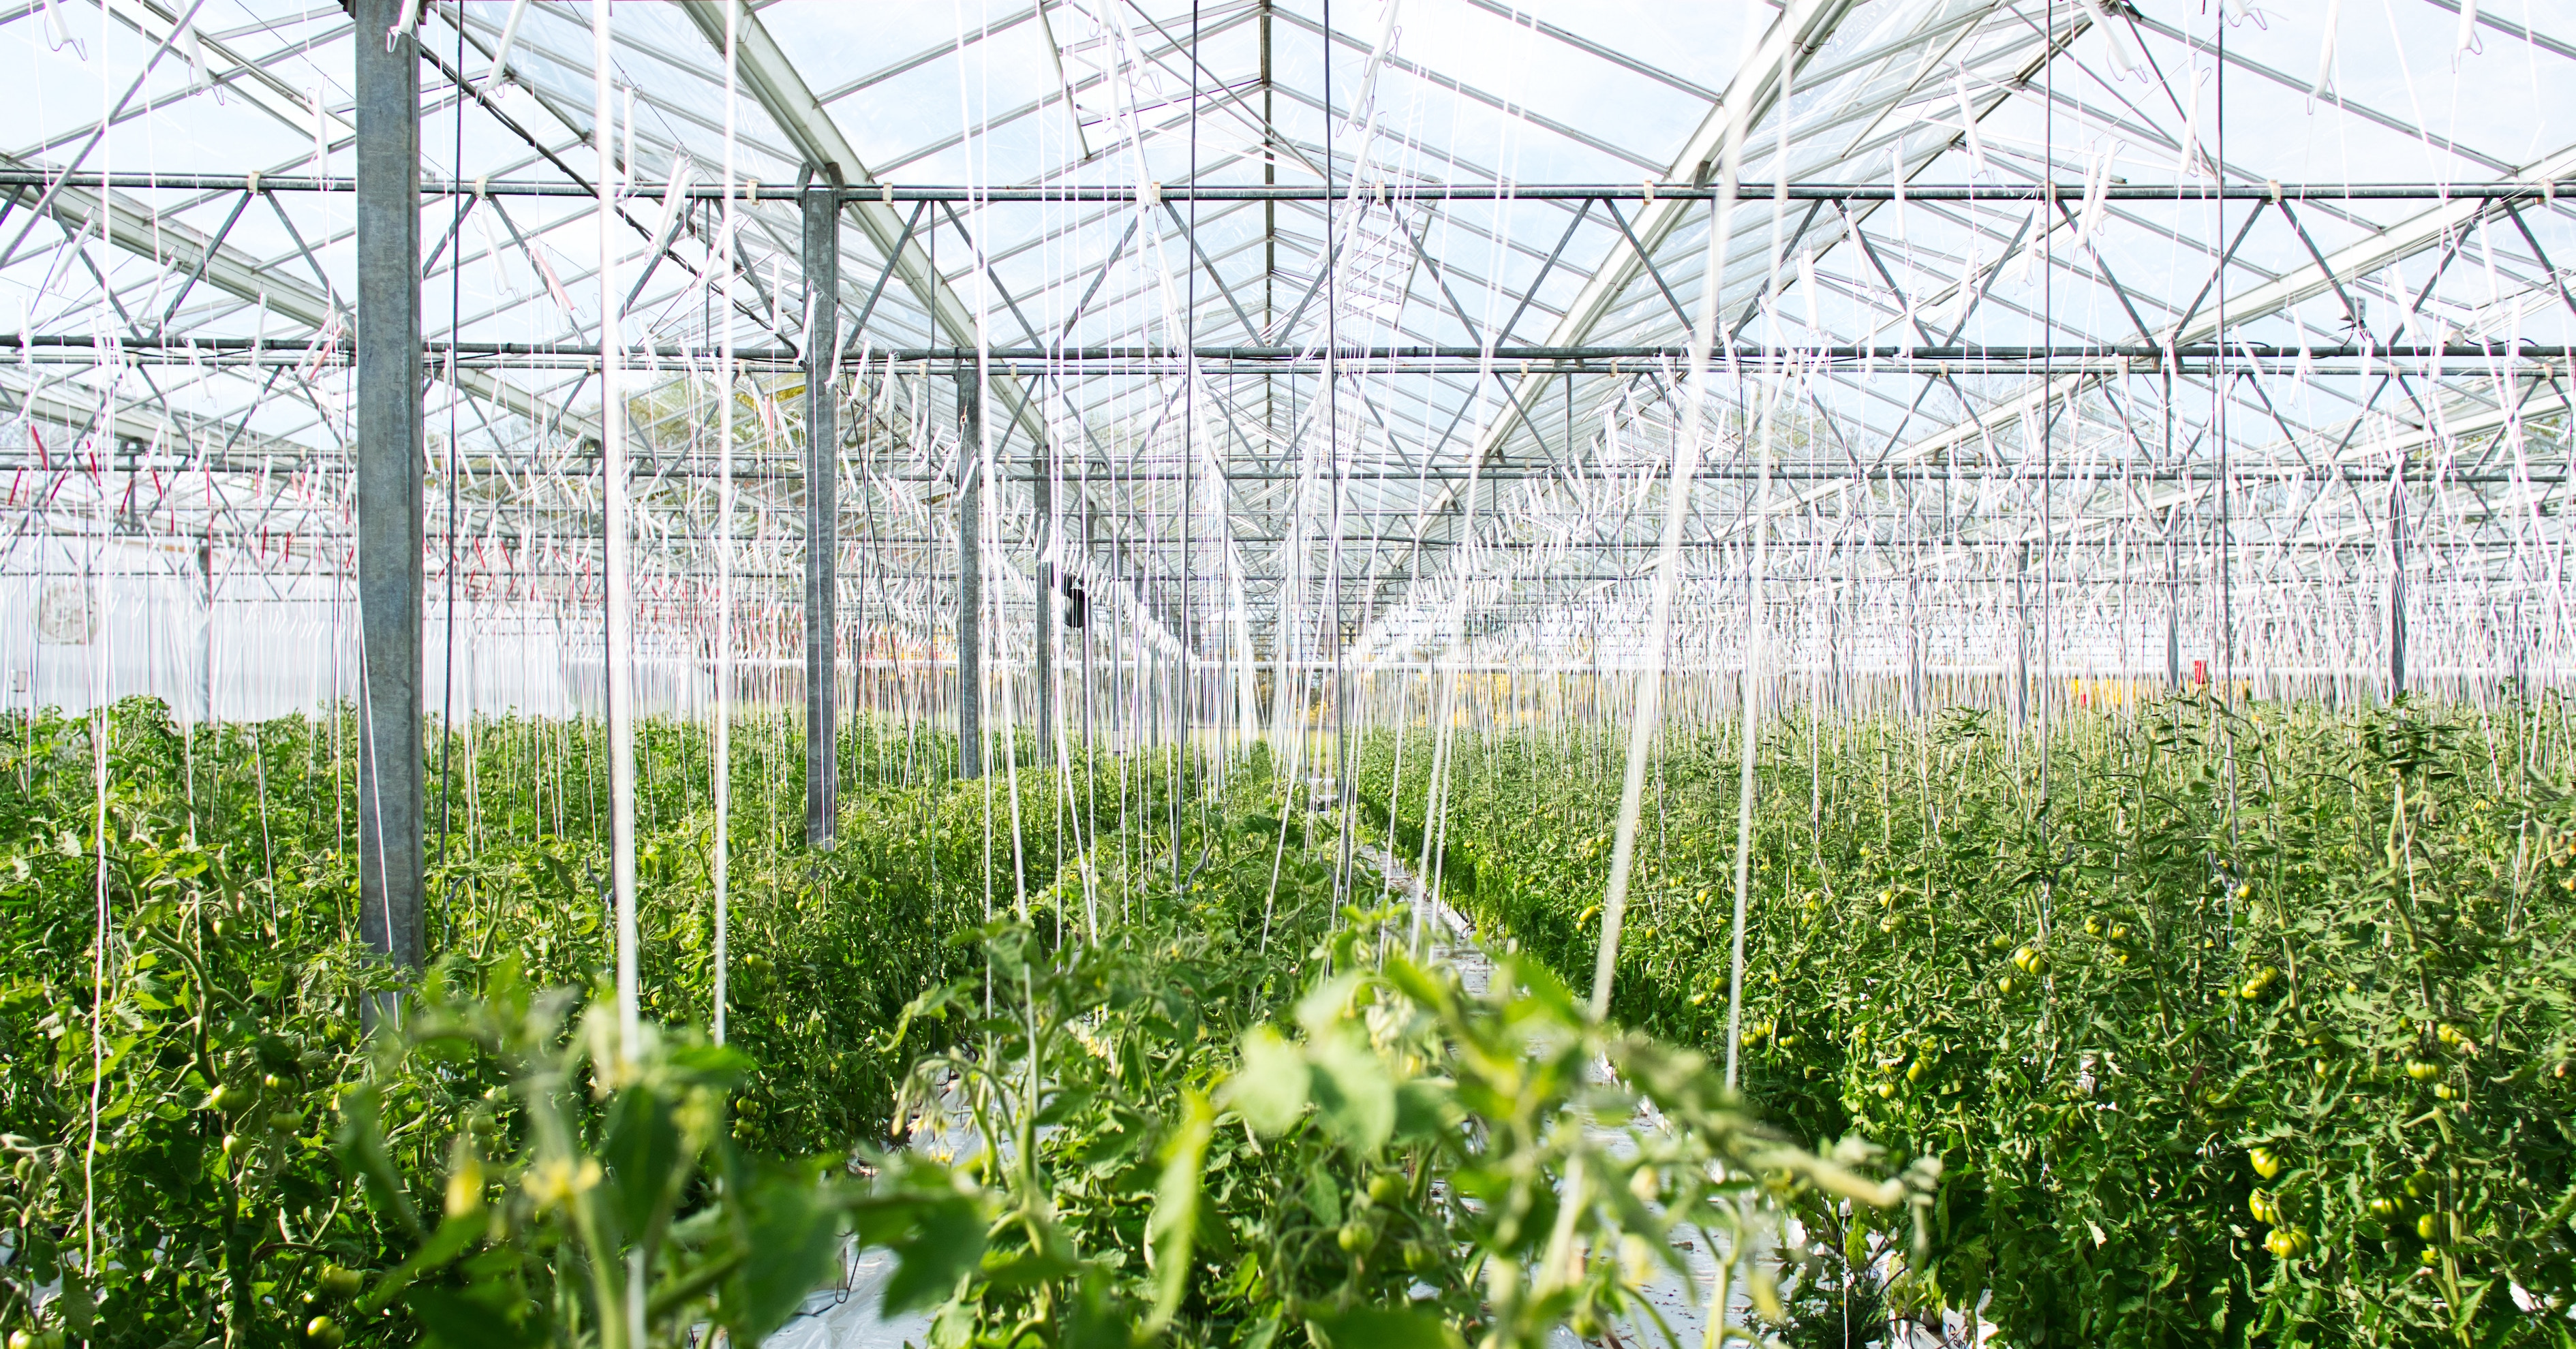 Greenhouse full of leafy vegetables